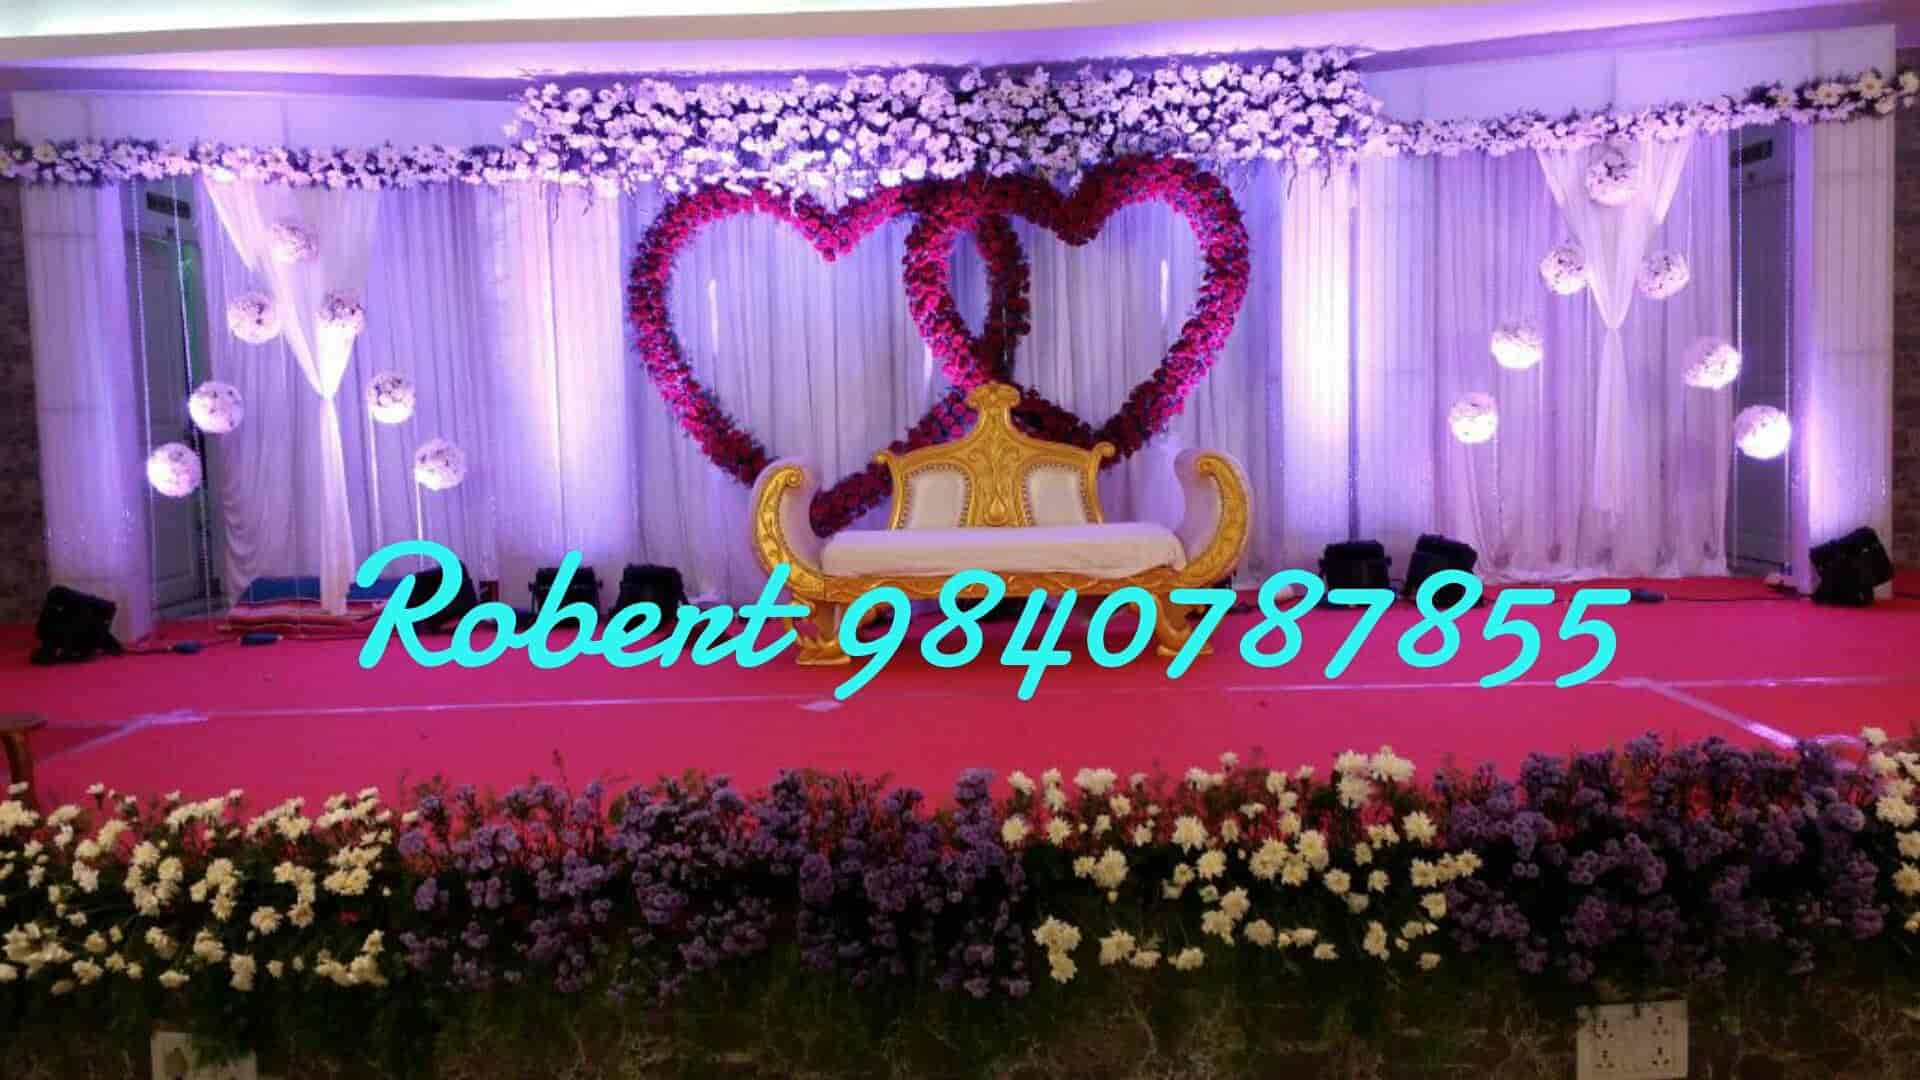 Wedding decoration materials chennai choice image wedding dress wedding decoration material for sale in chennai images wedding new annai decorations photos pushpa nagar nungambakkam junglespirit Gallery